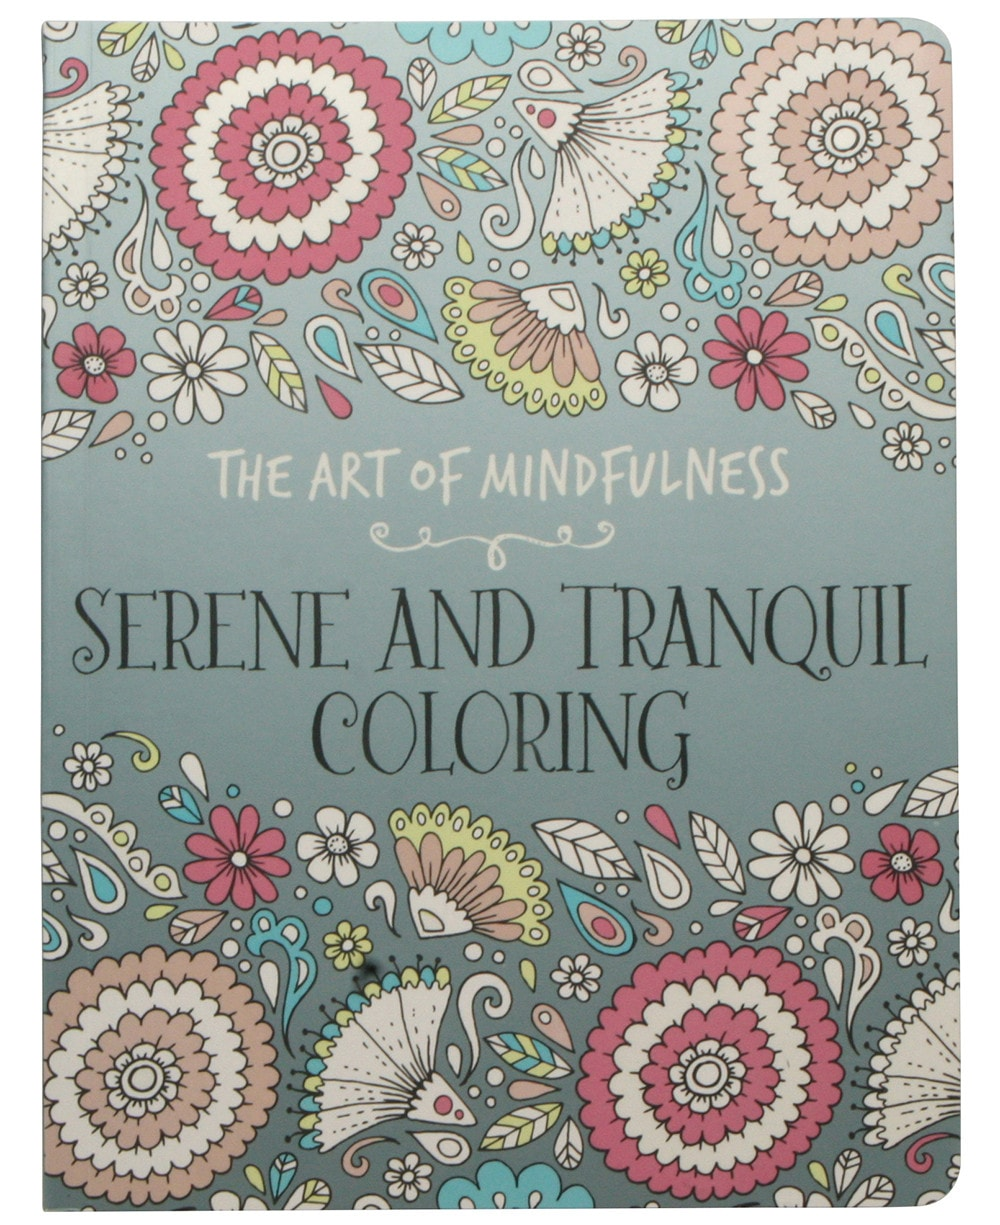 The Art of Mindfulness: Serene and Tranquil Coloring - Coloring Book Zone